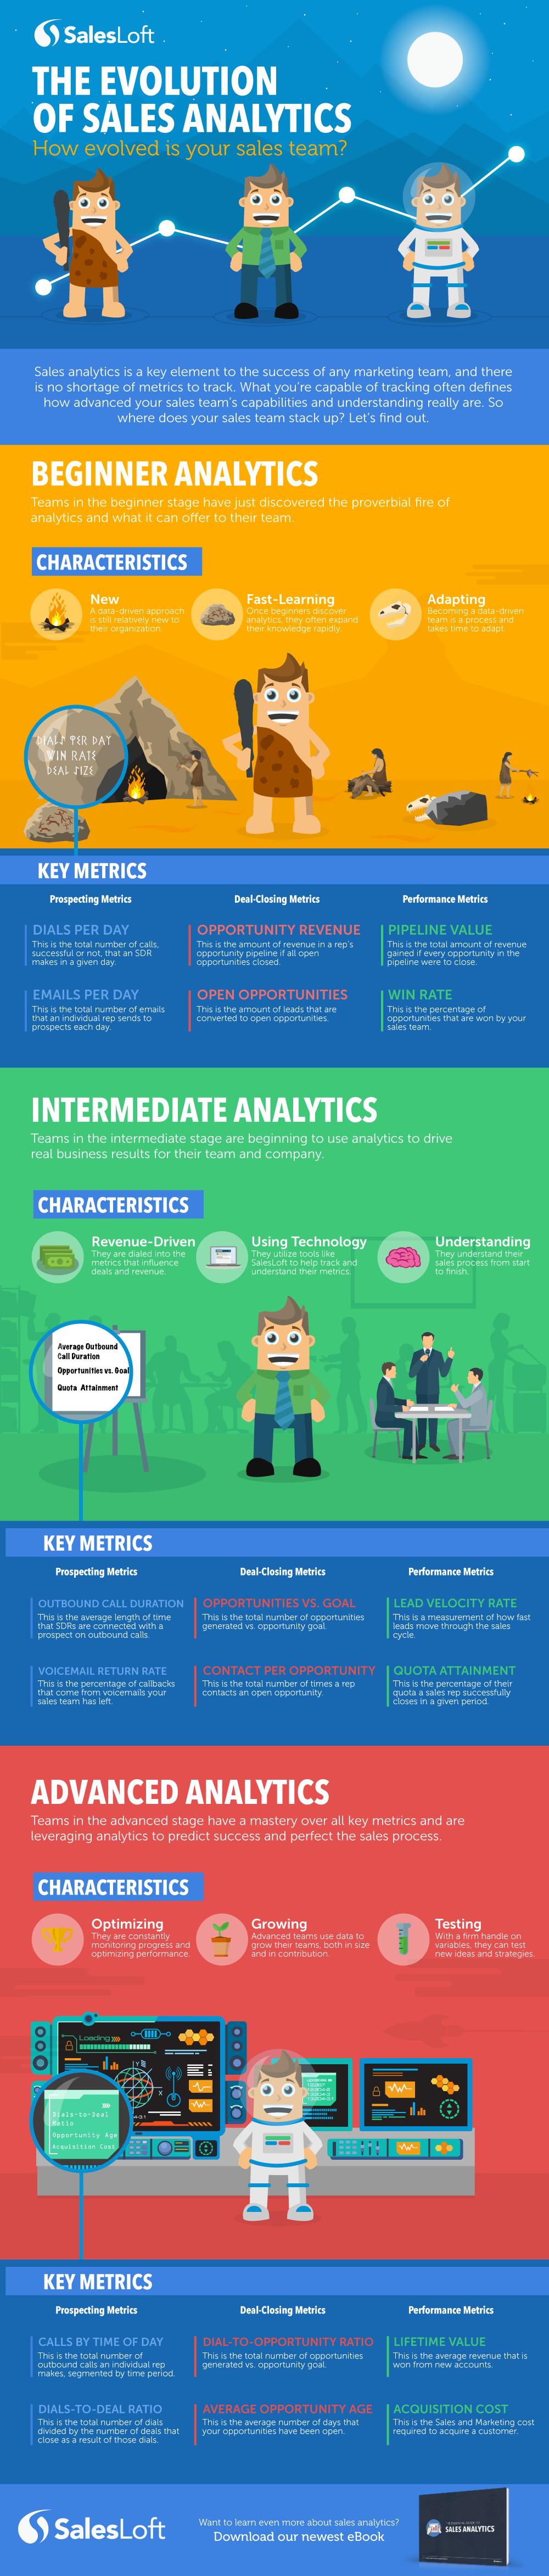 Evolution-of-Sales-Analytics-Infographic